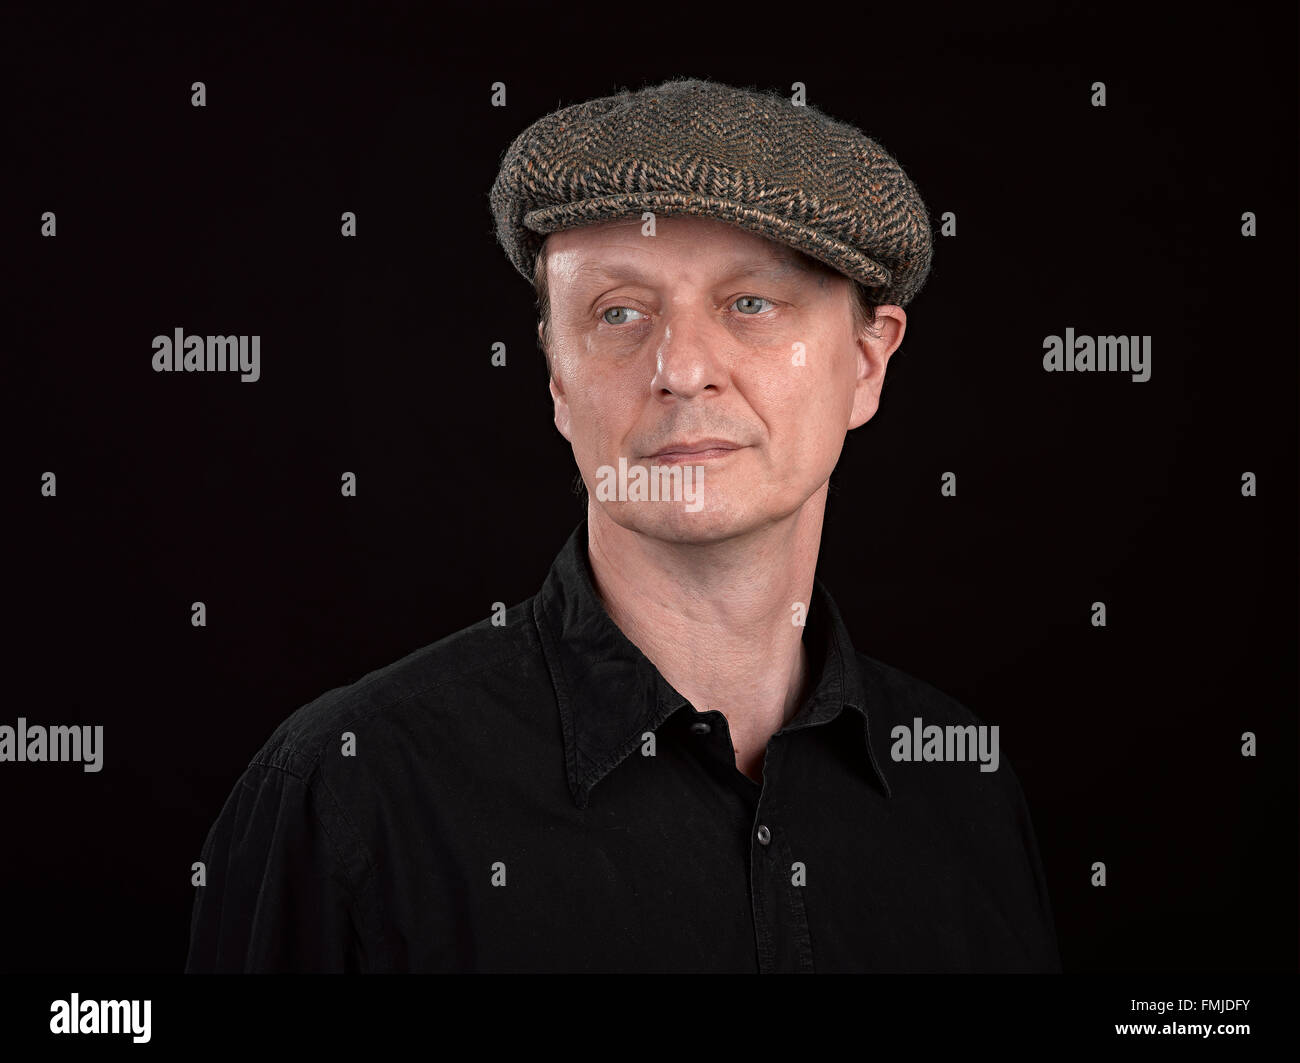 A male model wearing a patterned side hat on black background - Stock Image